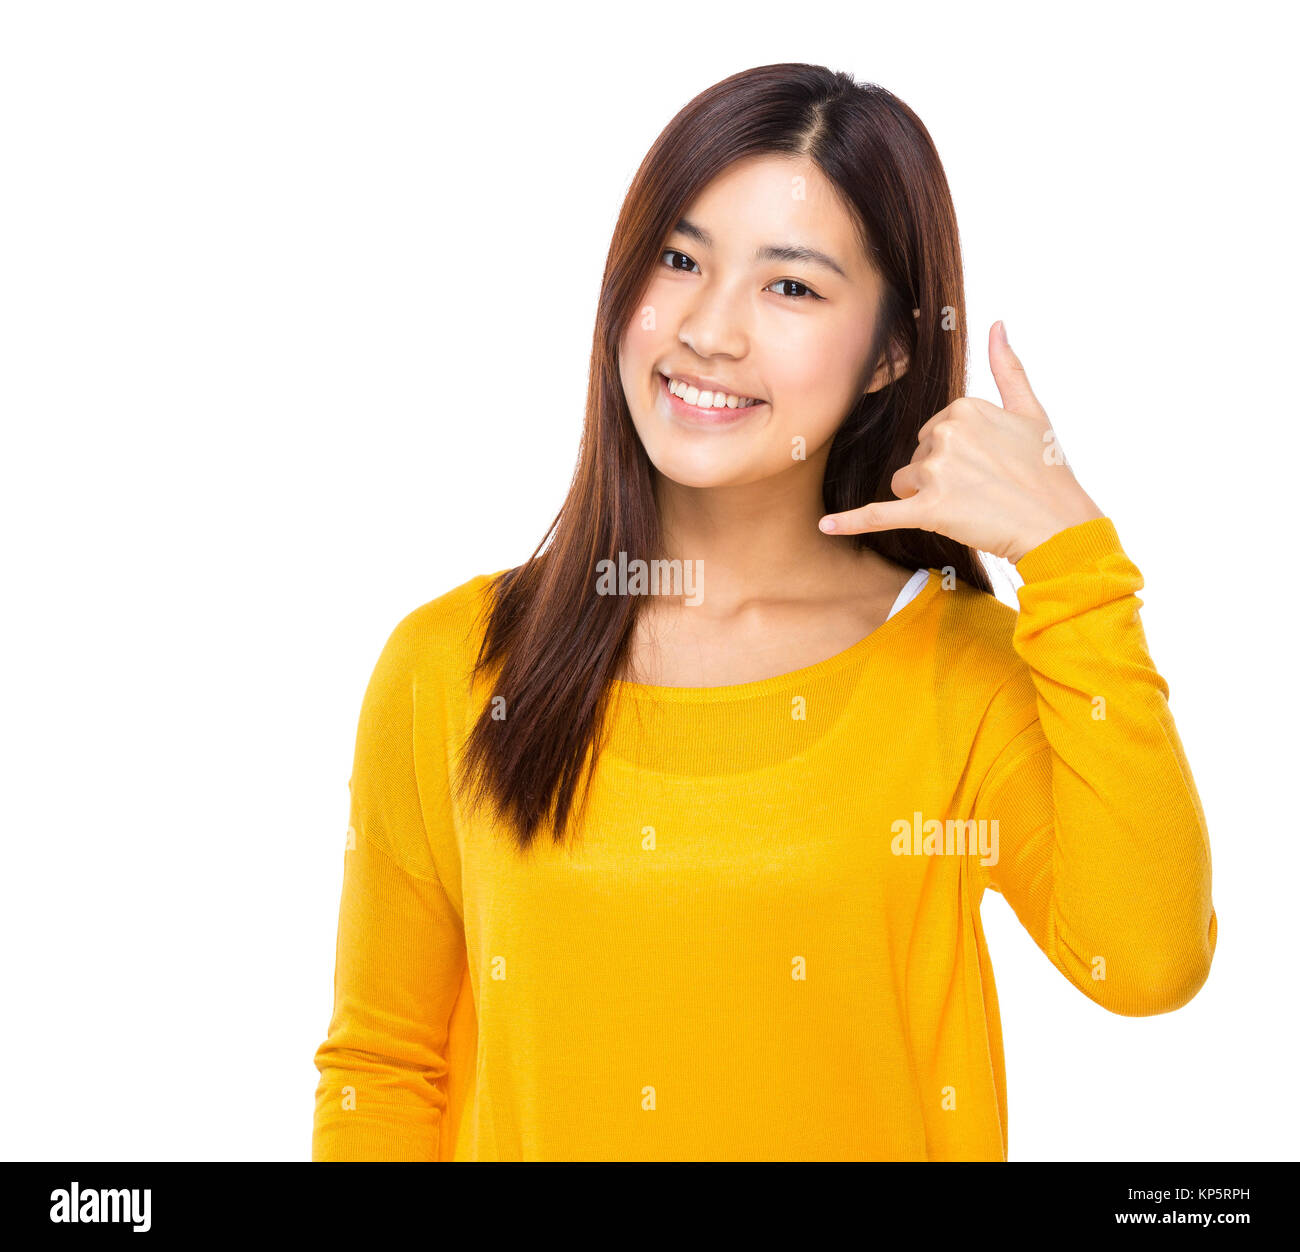 Young woman show with call me sign - Stock Image